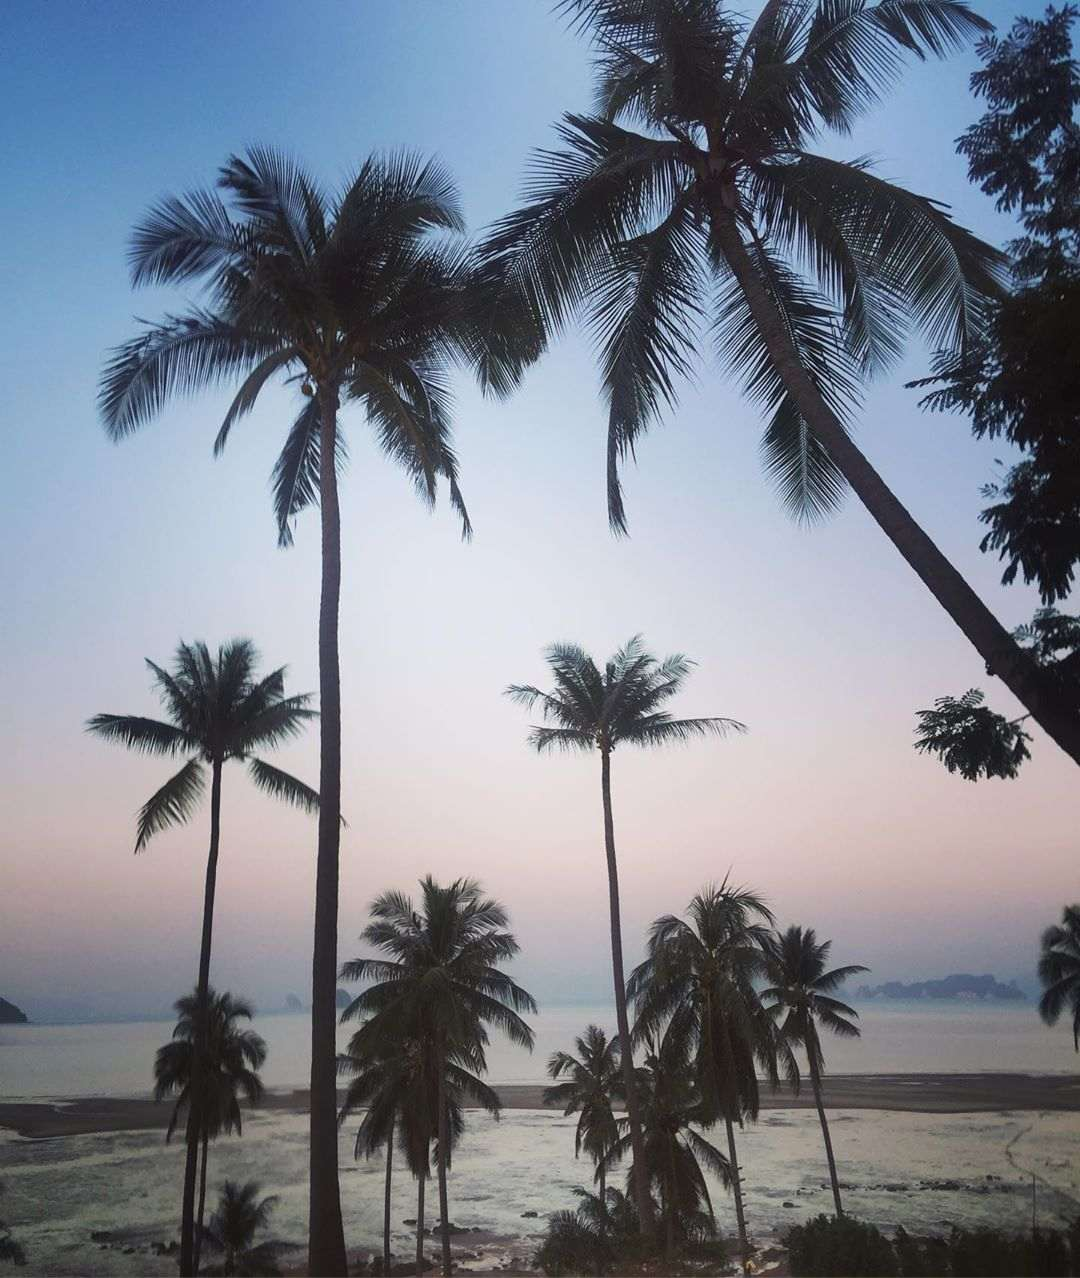 Beautiful sky with palm trees in the foreground seen from Koh Yao Yai